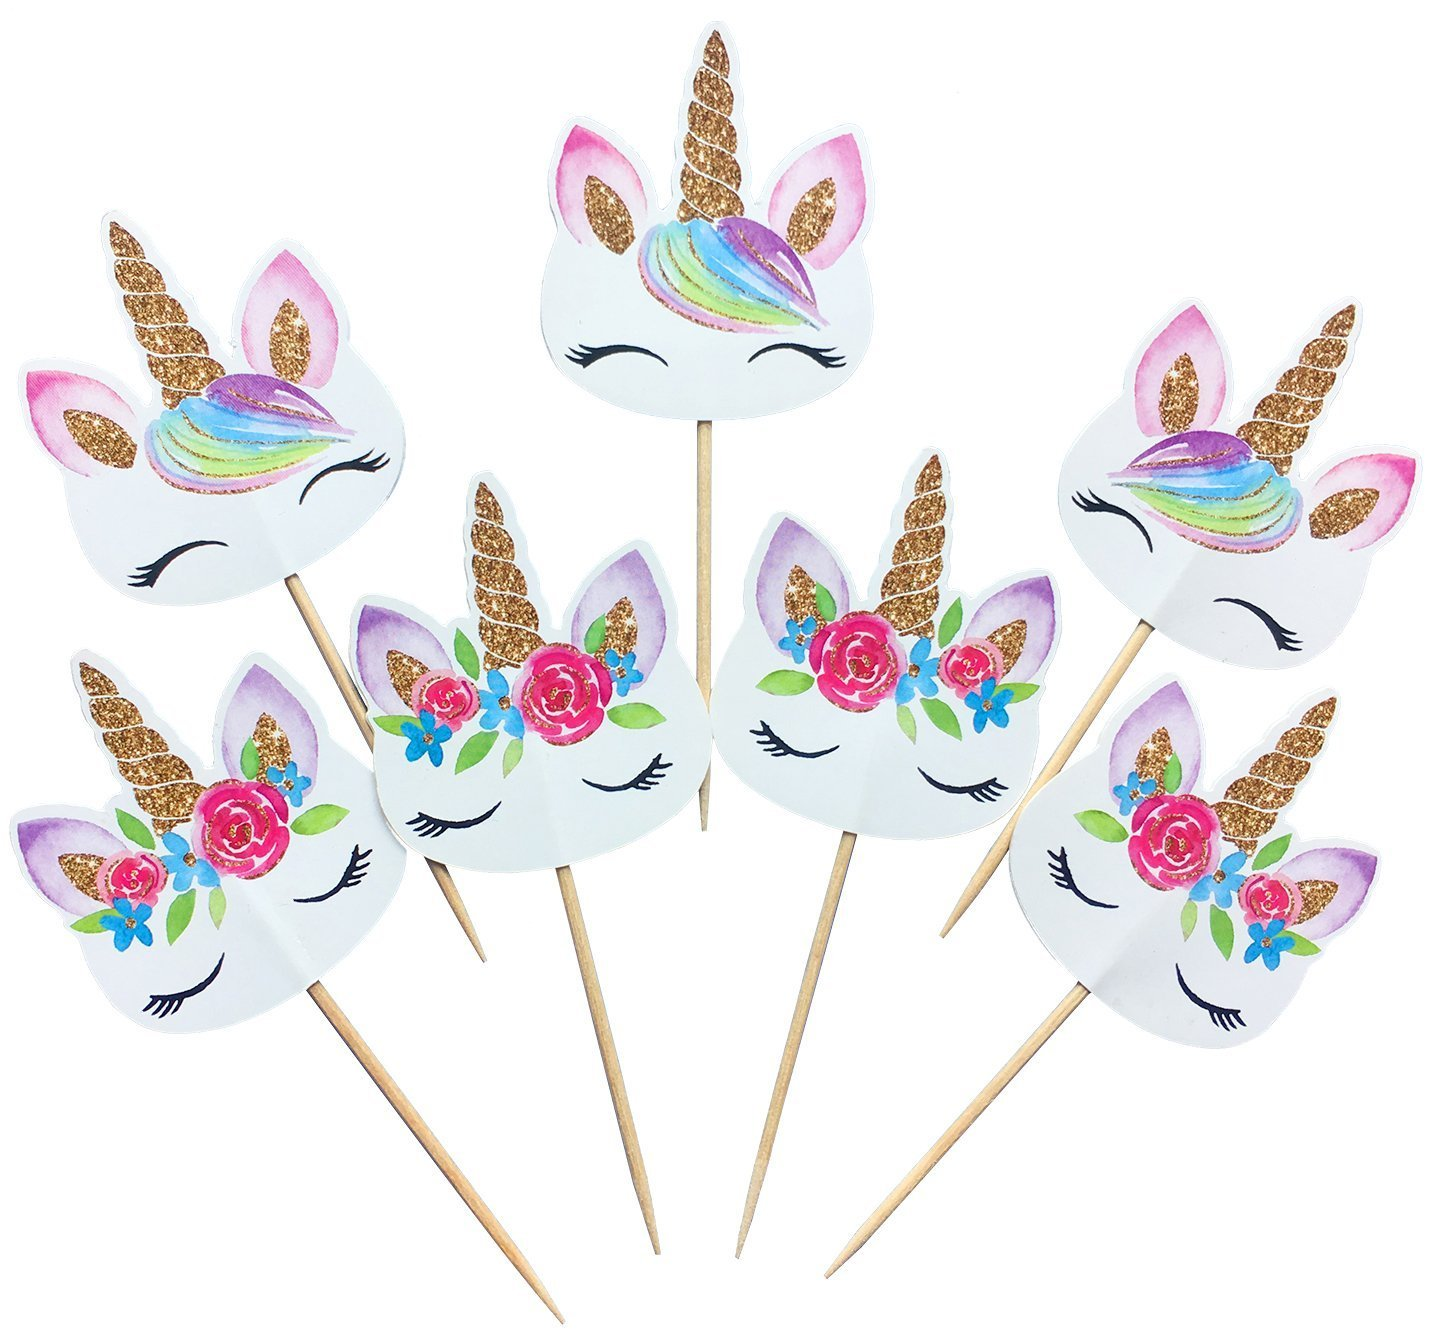 48 Pieces Rainbow Unicorn Cupcake Toppers Double Sided for Birthday Baby Shower Party Decorations Supplies with Two Different Styles VEHIRIN